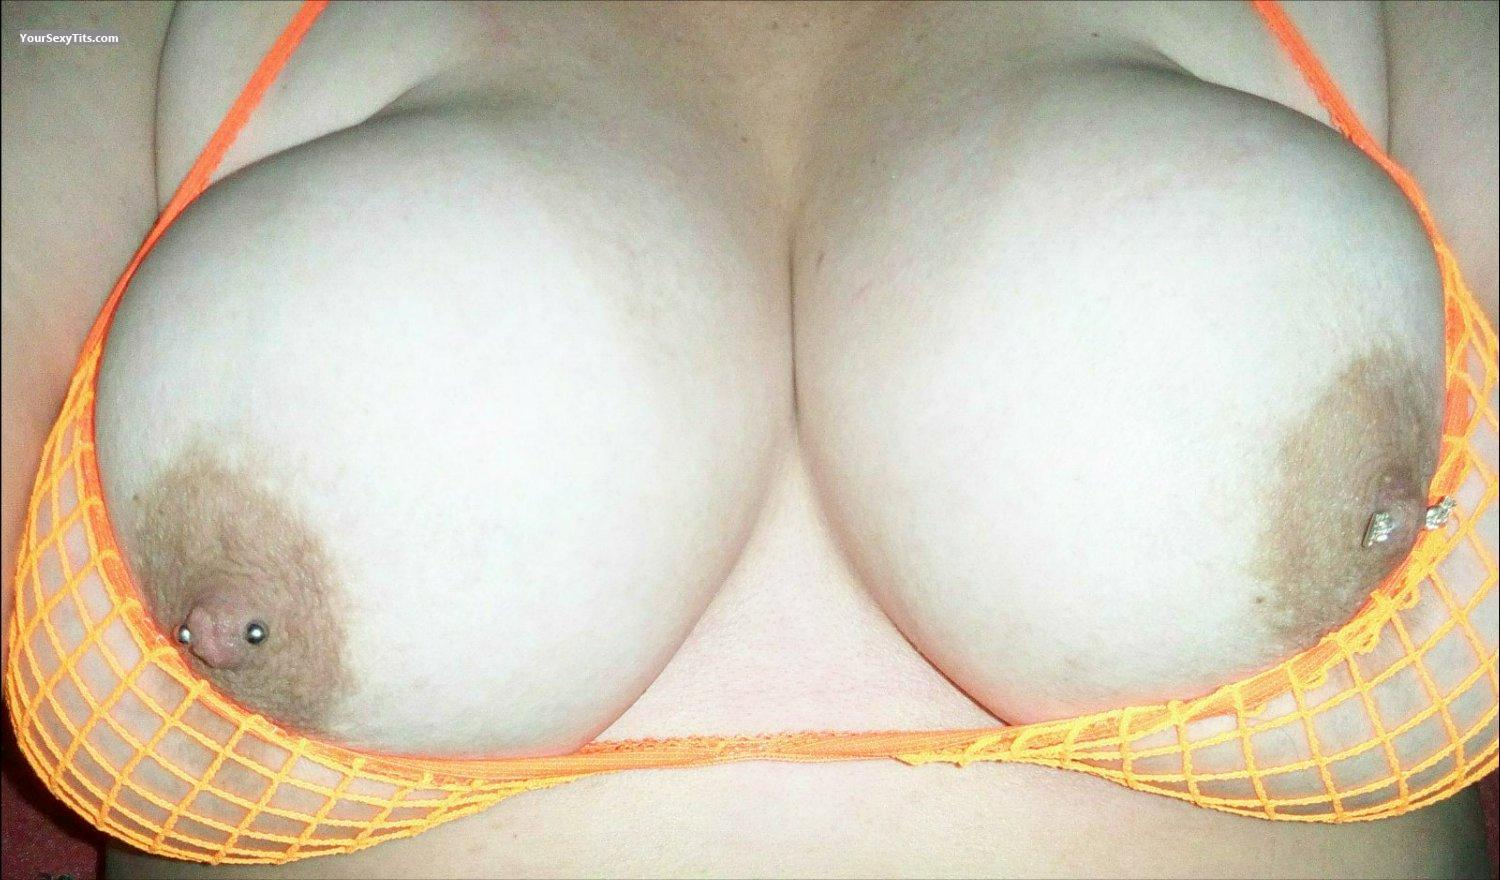 Tit Flash: My Very Big Tits (Selfie) - Jen from United StatesPierced Nipples